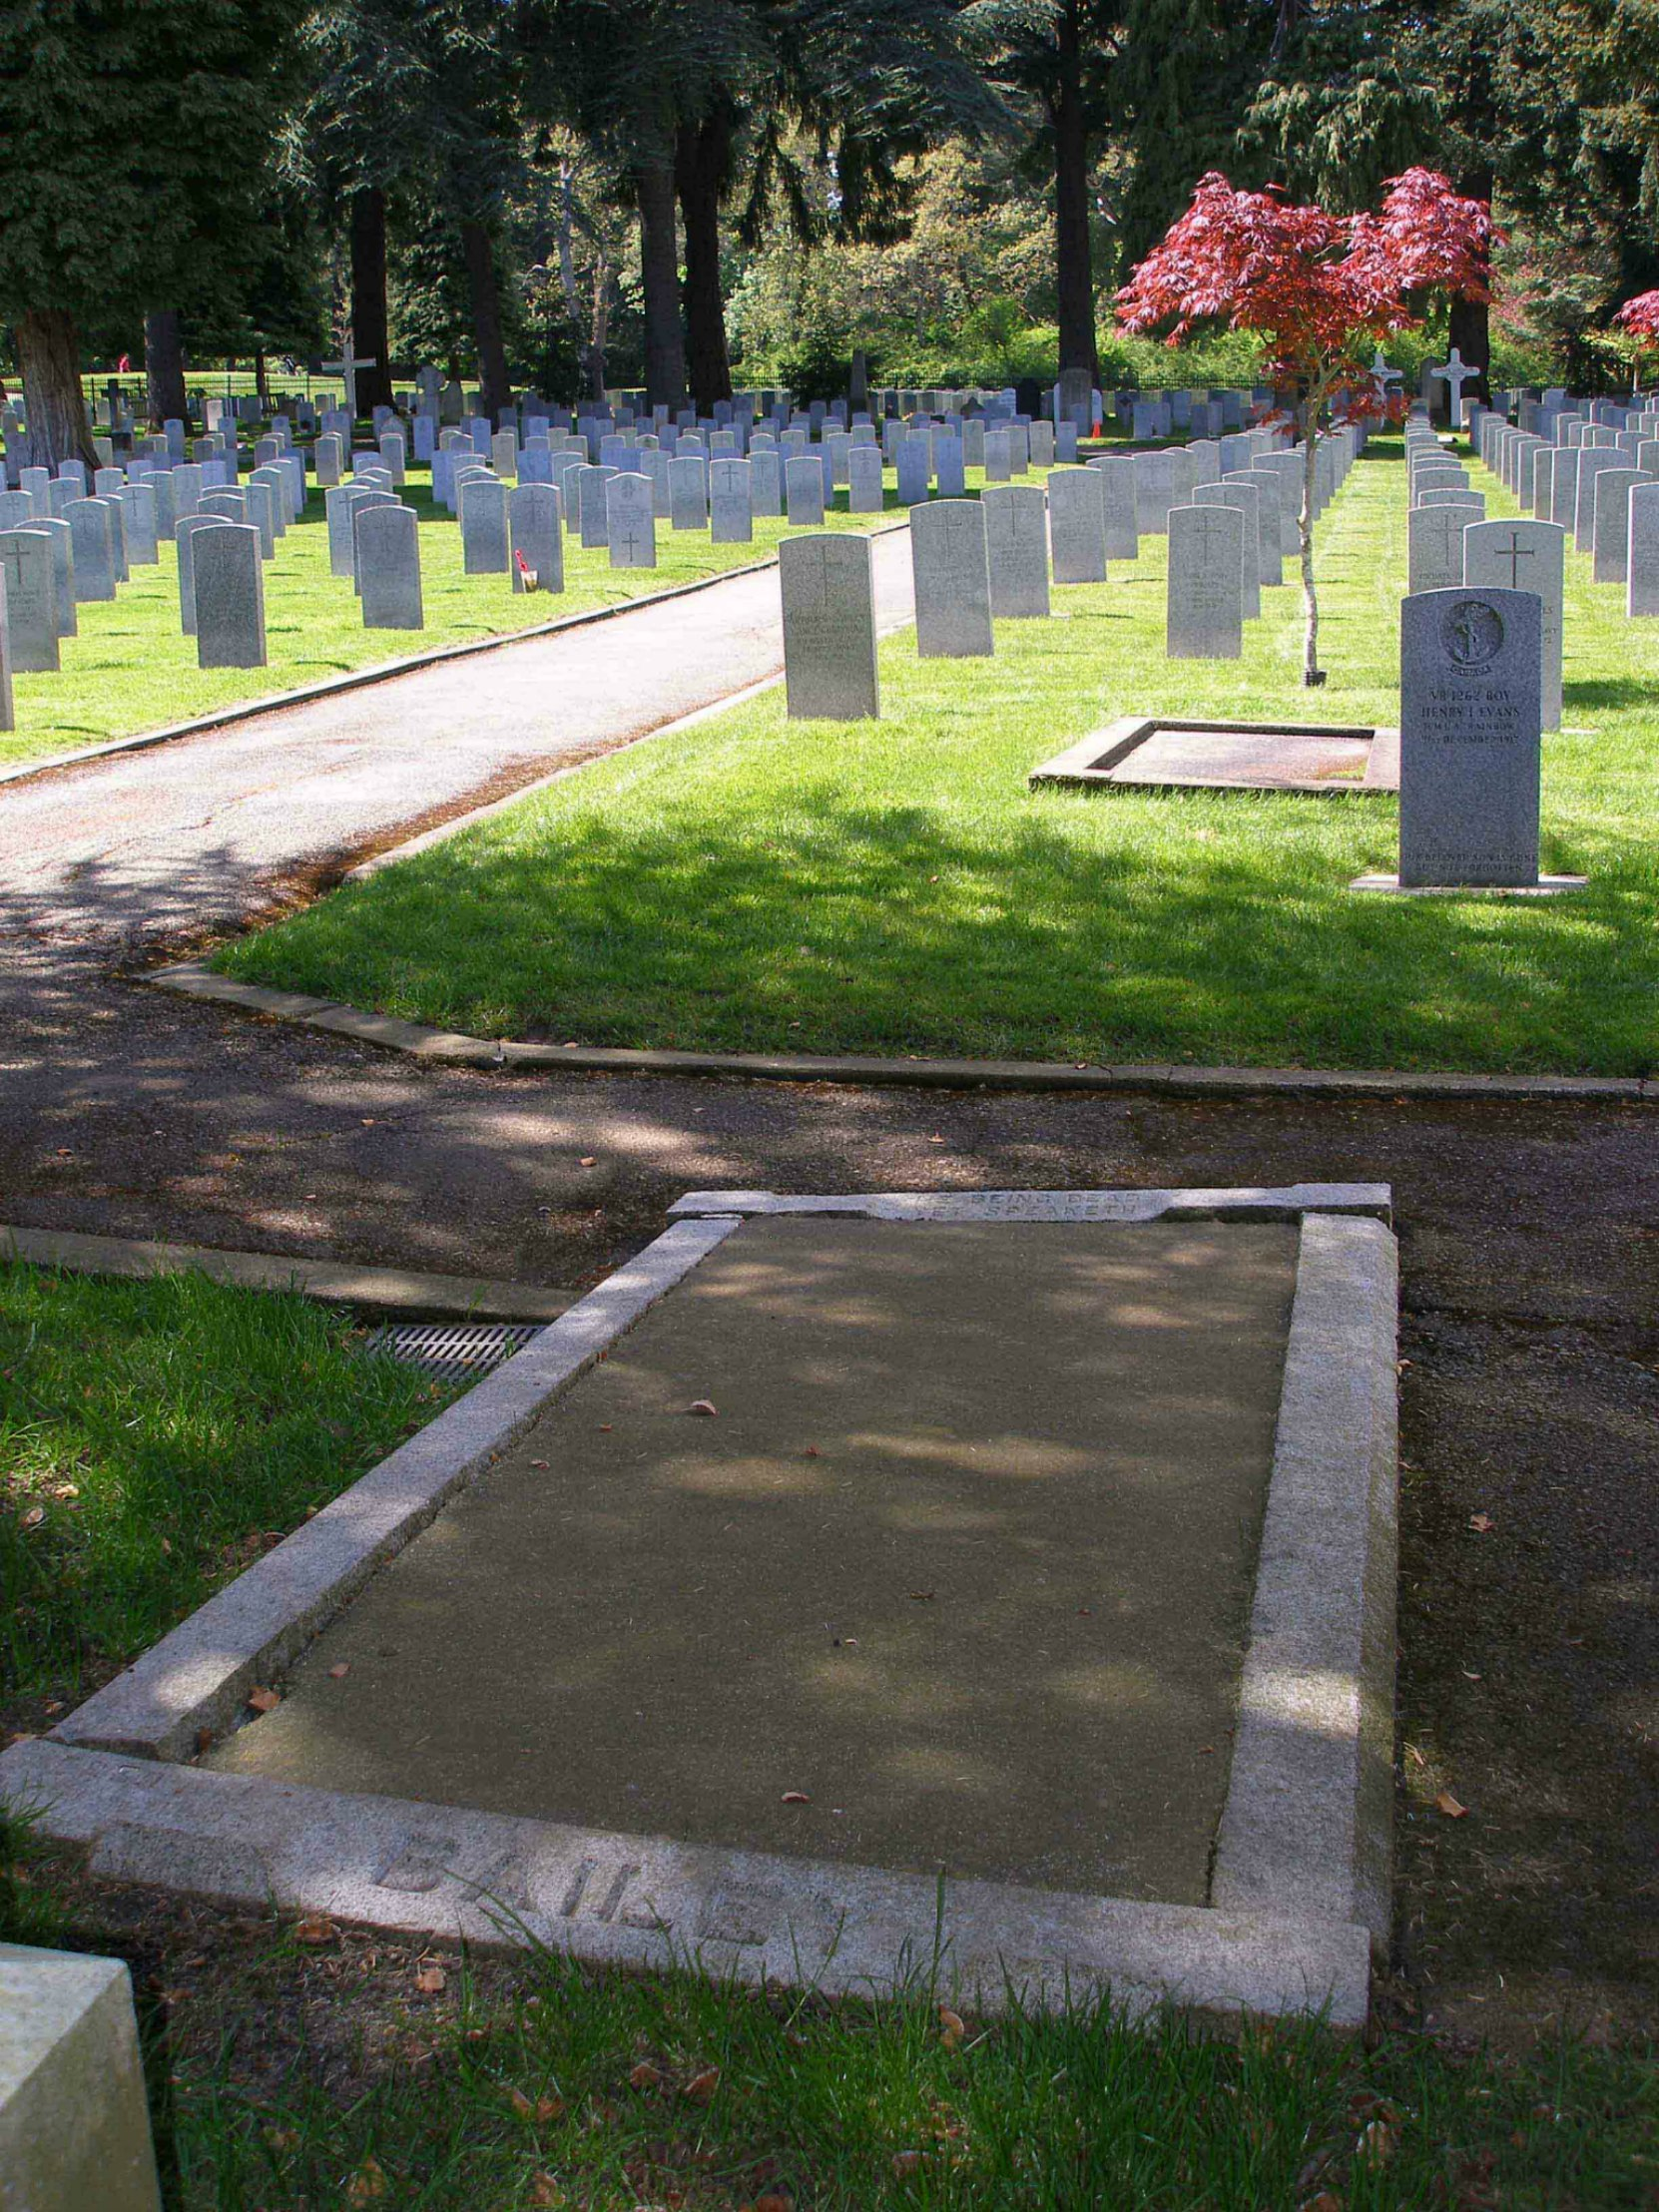 The grave of Frederick James Bailey in the Naval & Veterans cemetery, Esquimalt, B.C.